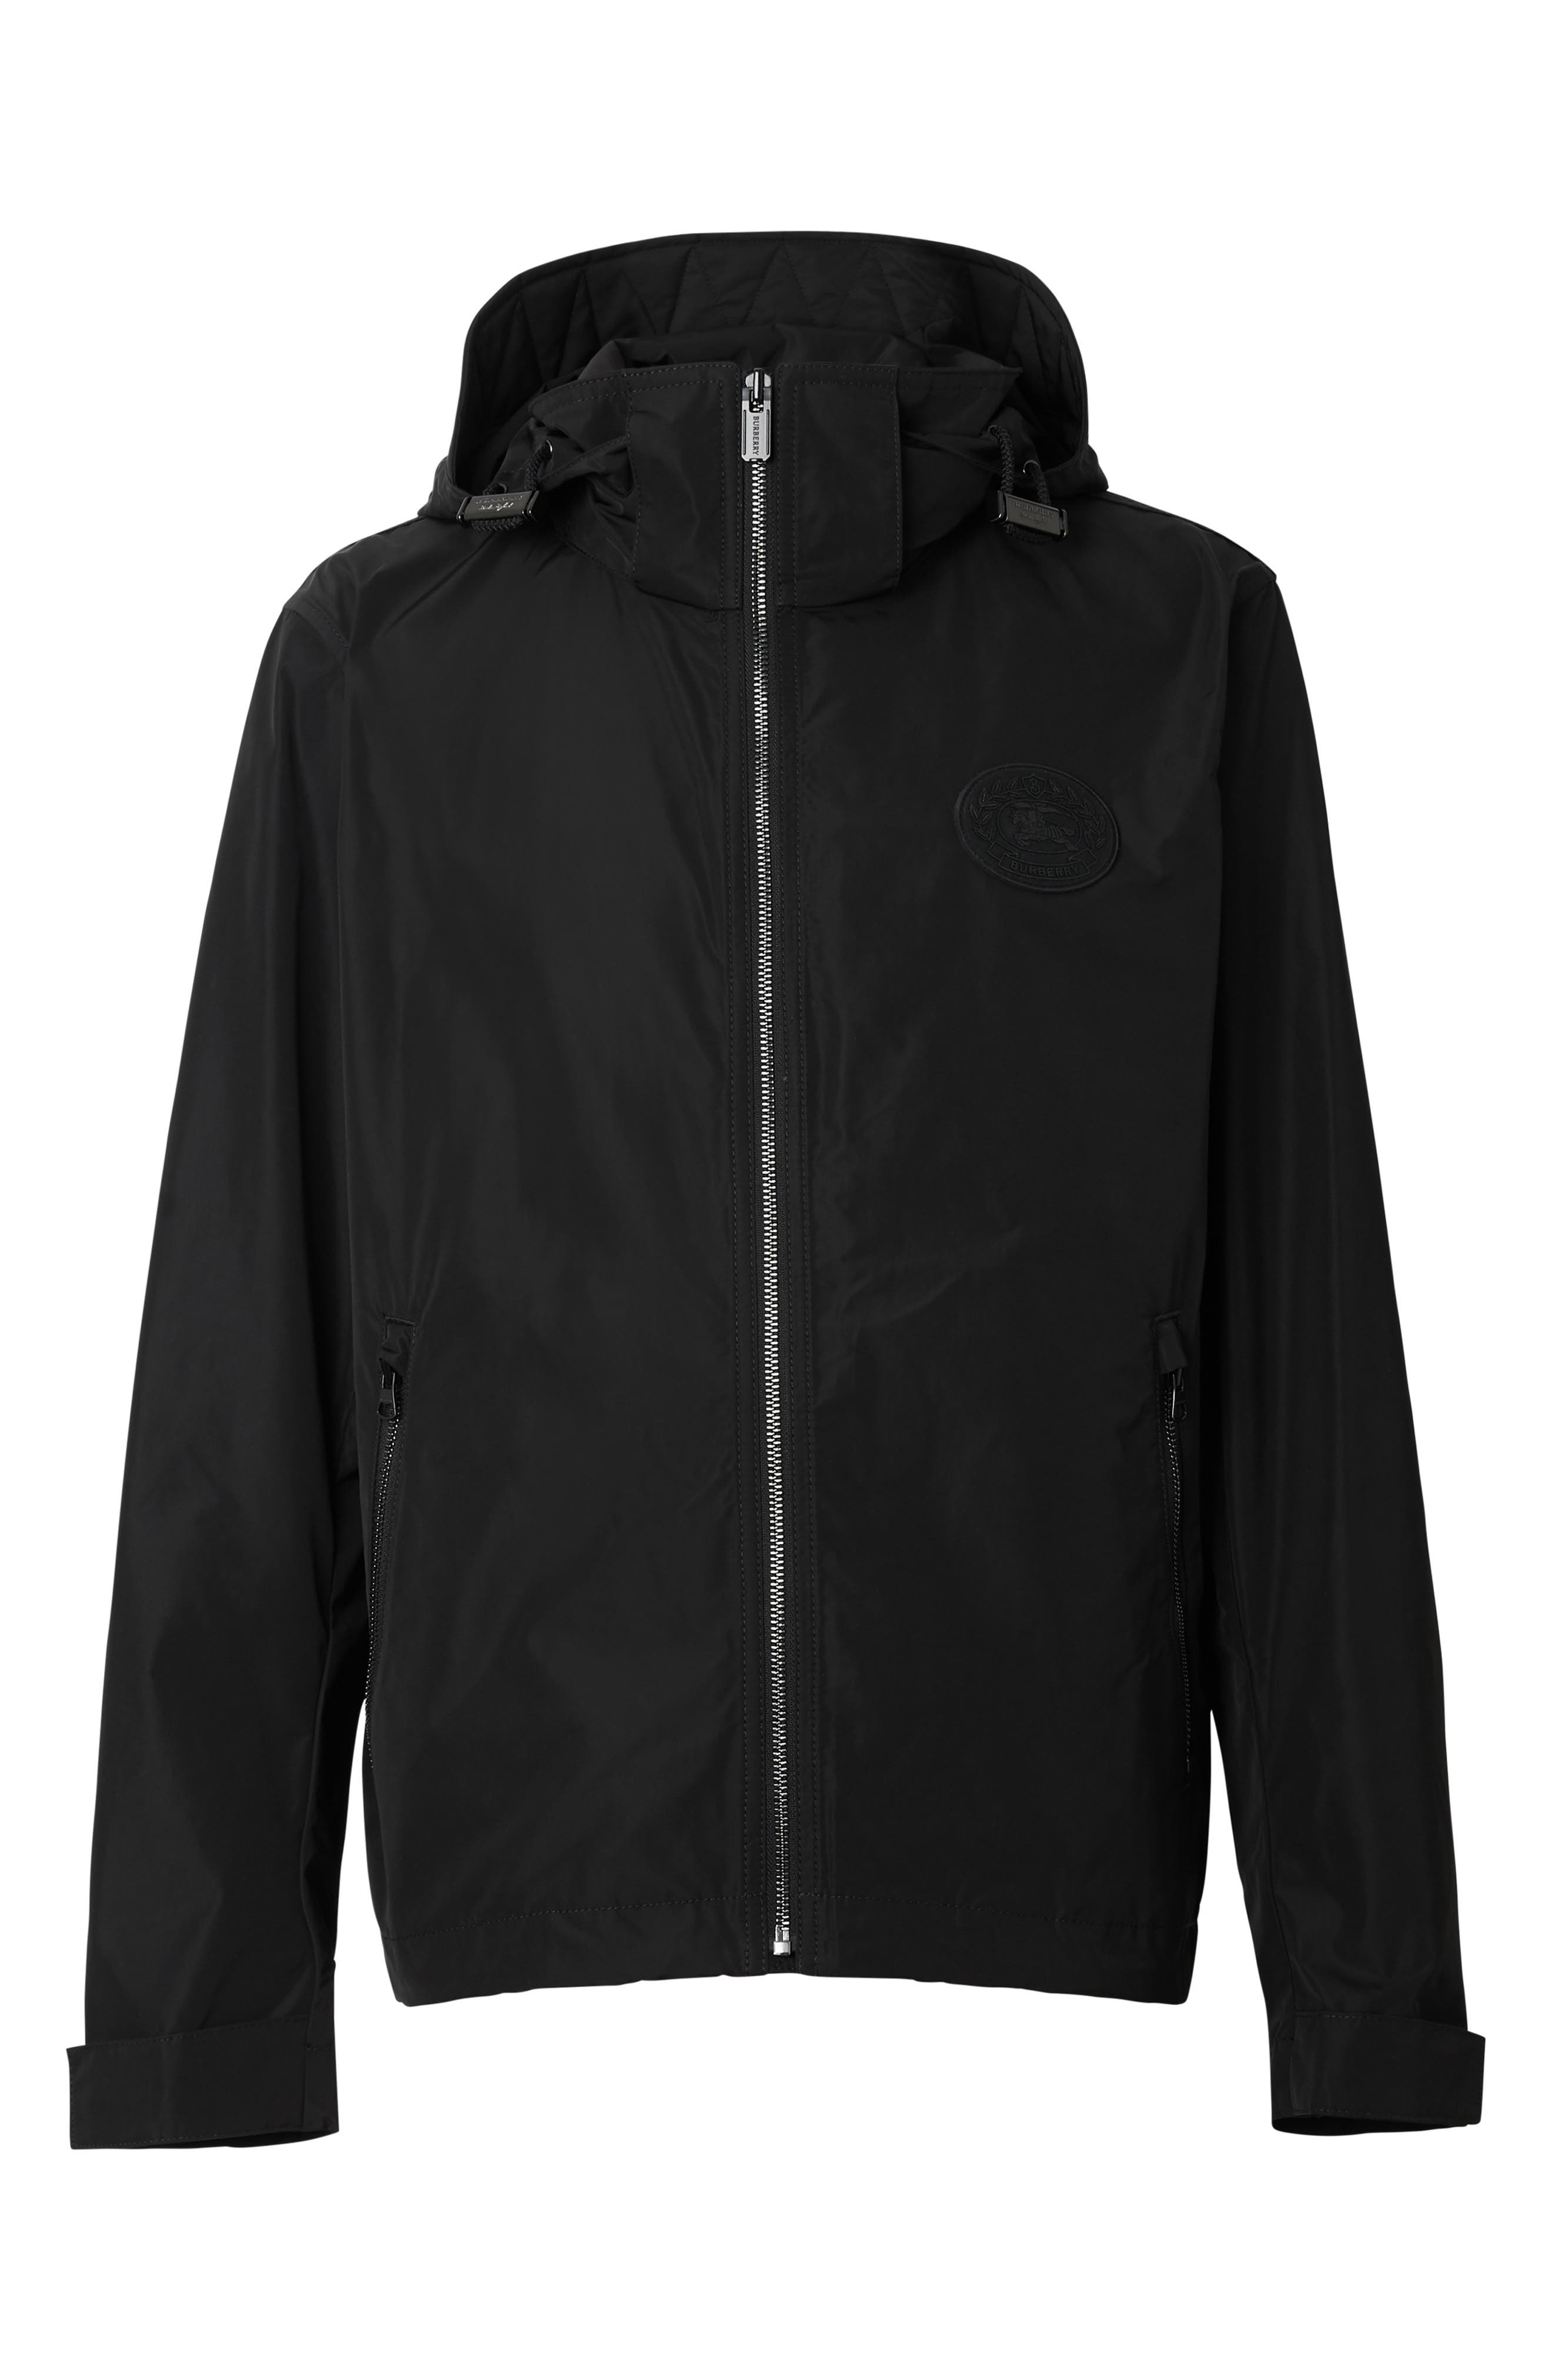 BURBERRY,                             Robinson Hooded Zip Up Waterproof Jacket,                             Alternate thumbnail 5, color,                             BLACK